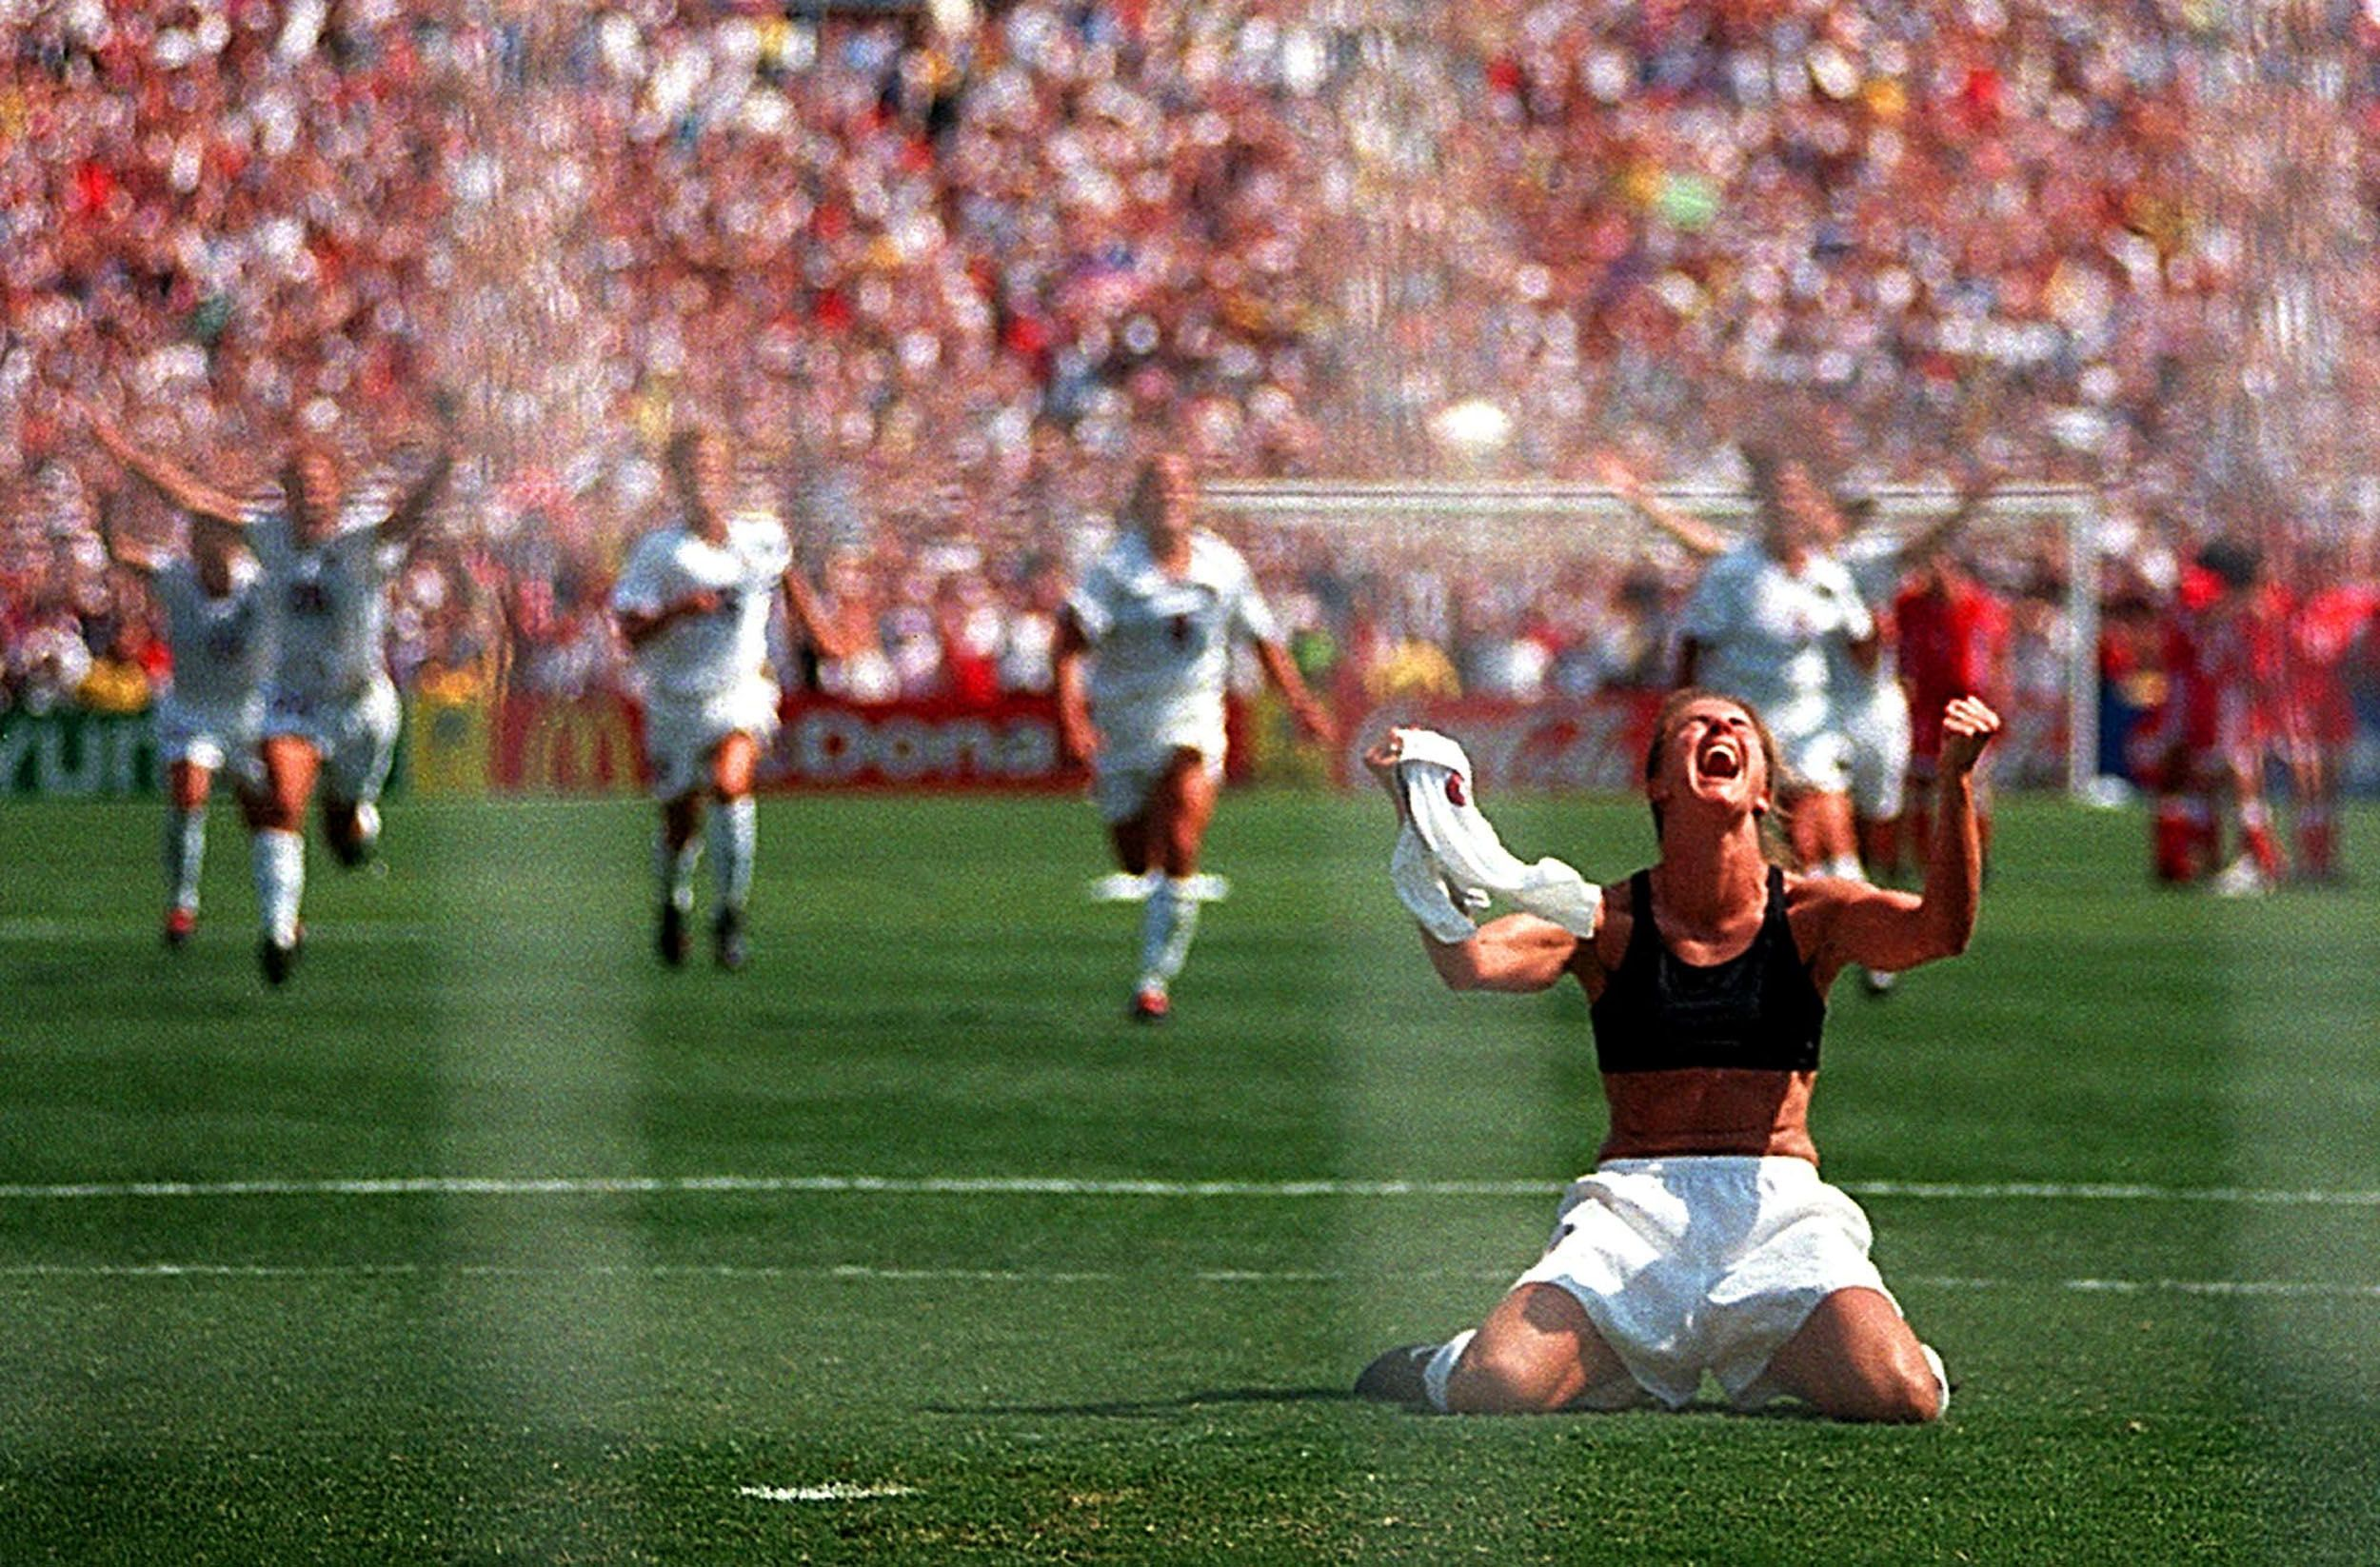 14 years ago today, July 10, Brandi Chastain took the penalty kick that won